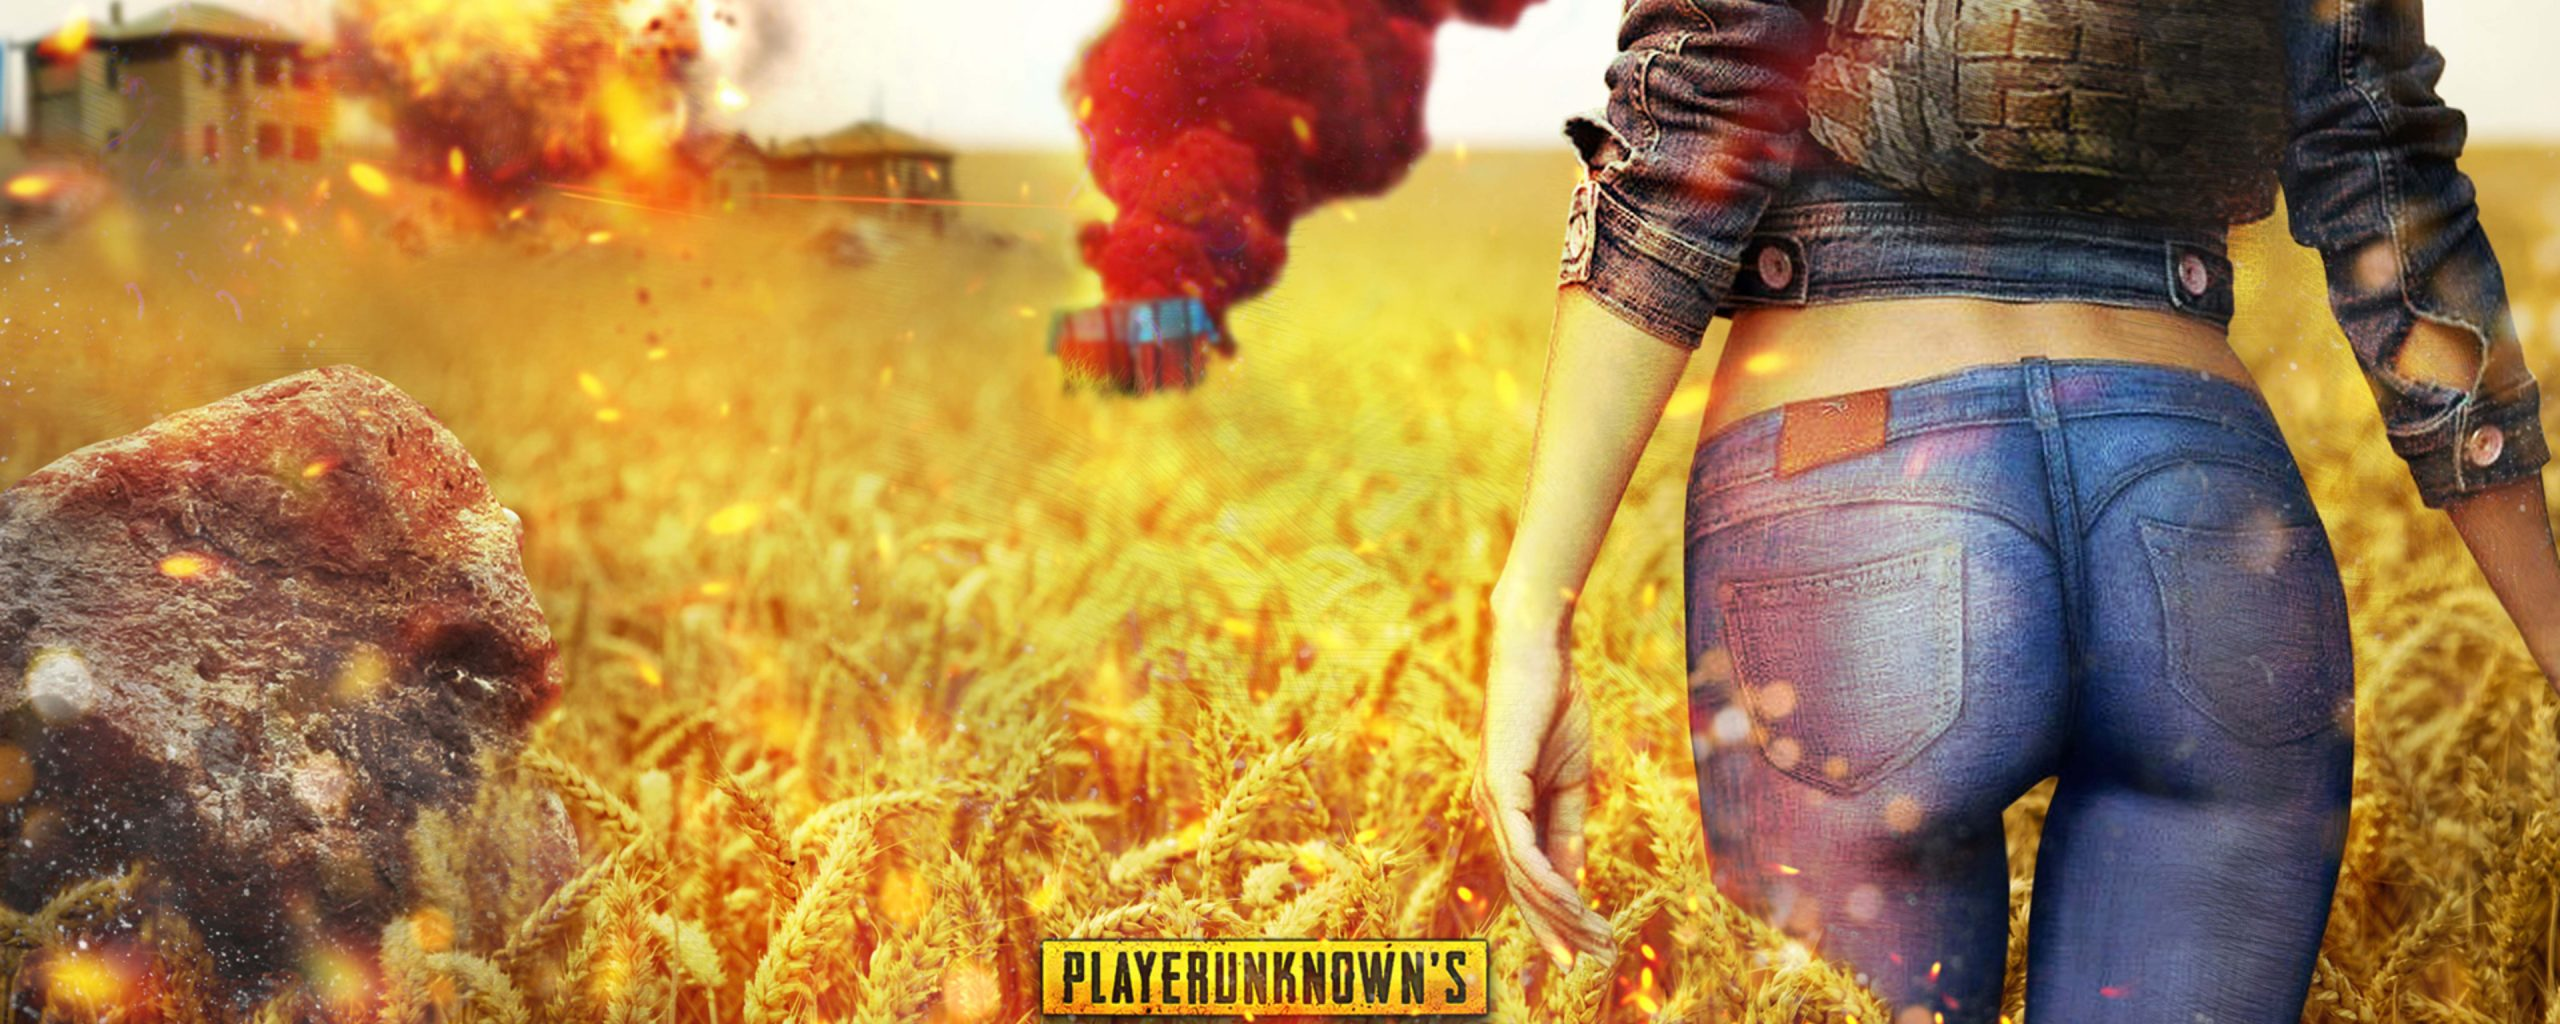 Playerunknowns Battlegrounds PUBG Cover 4K Wallpaper